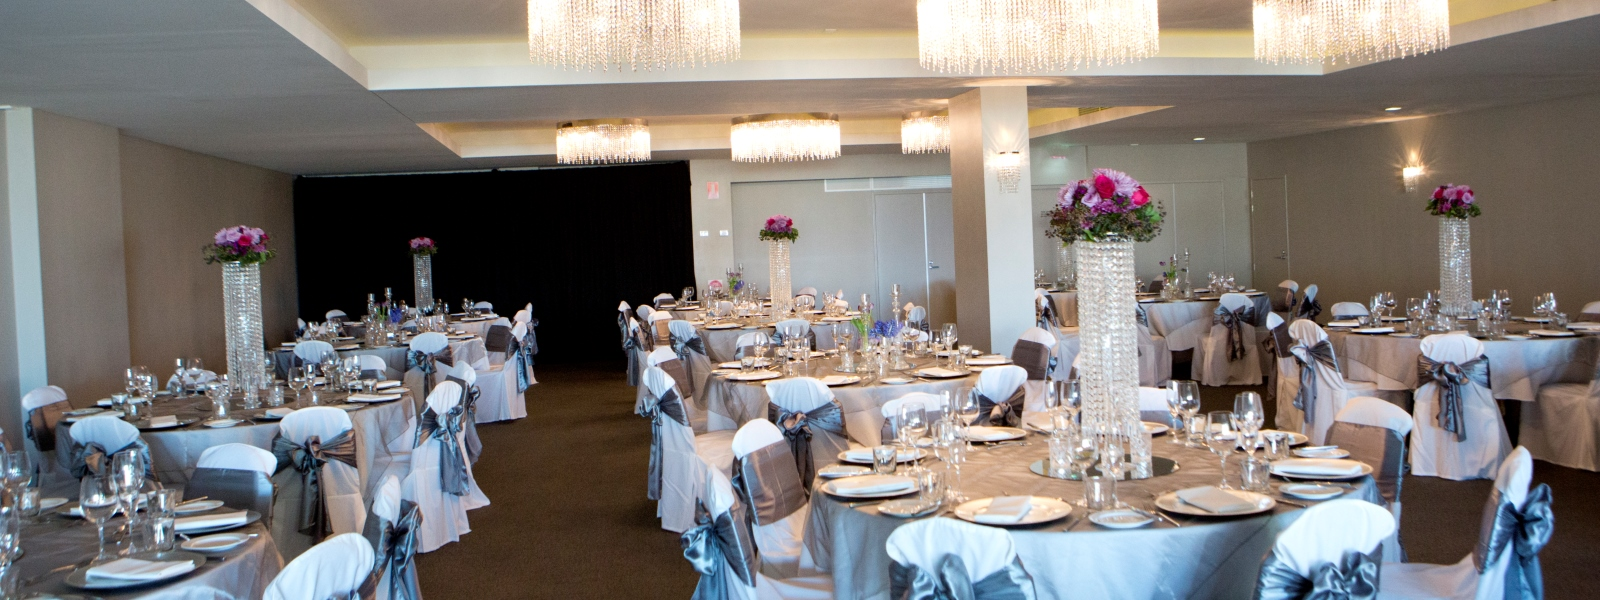 Wedding 3 gambaro hotel brisbane luxury hotel brisbane for 33 caxton street petrie terrace